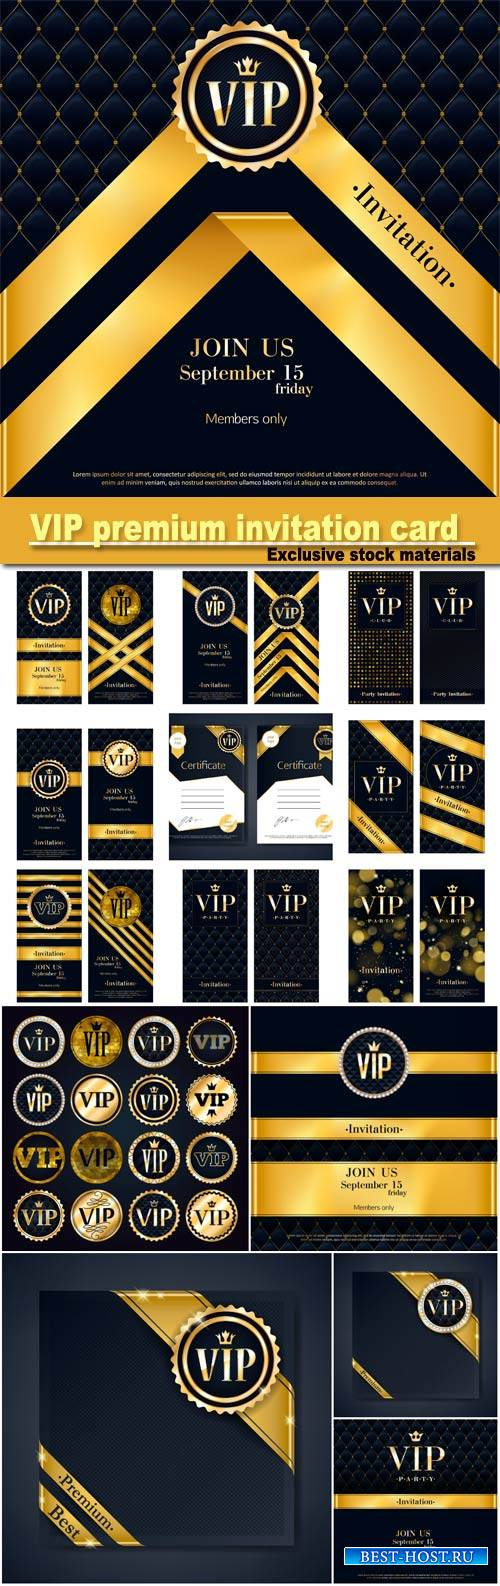 VIP party premium invitation card poster flyers set, black and golden desig ...